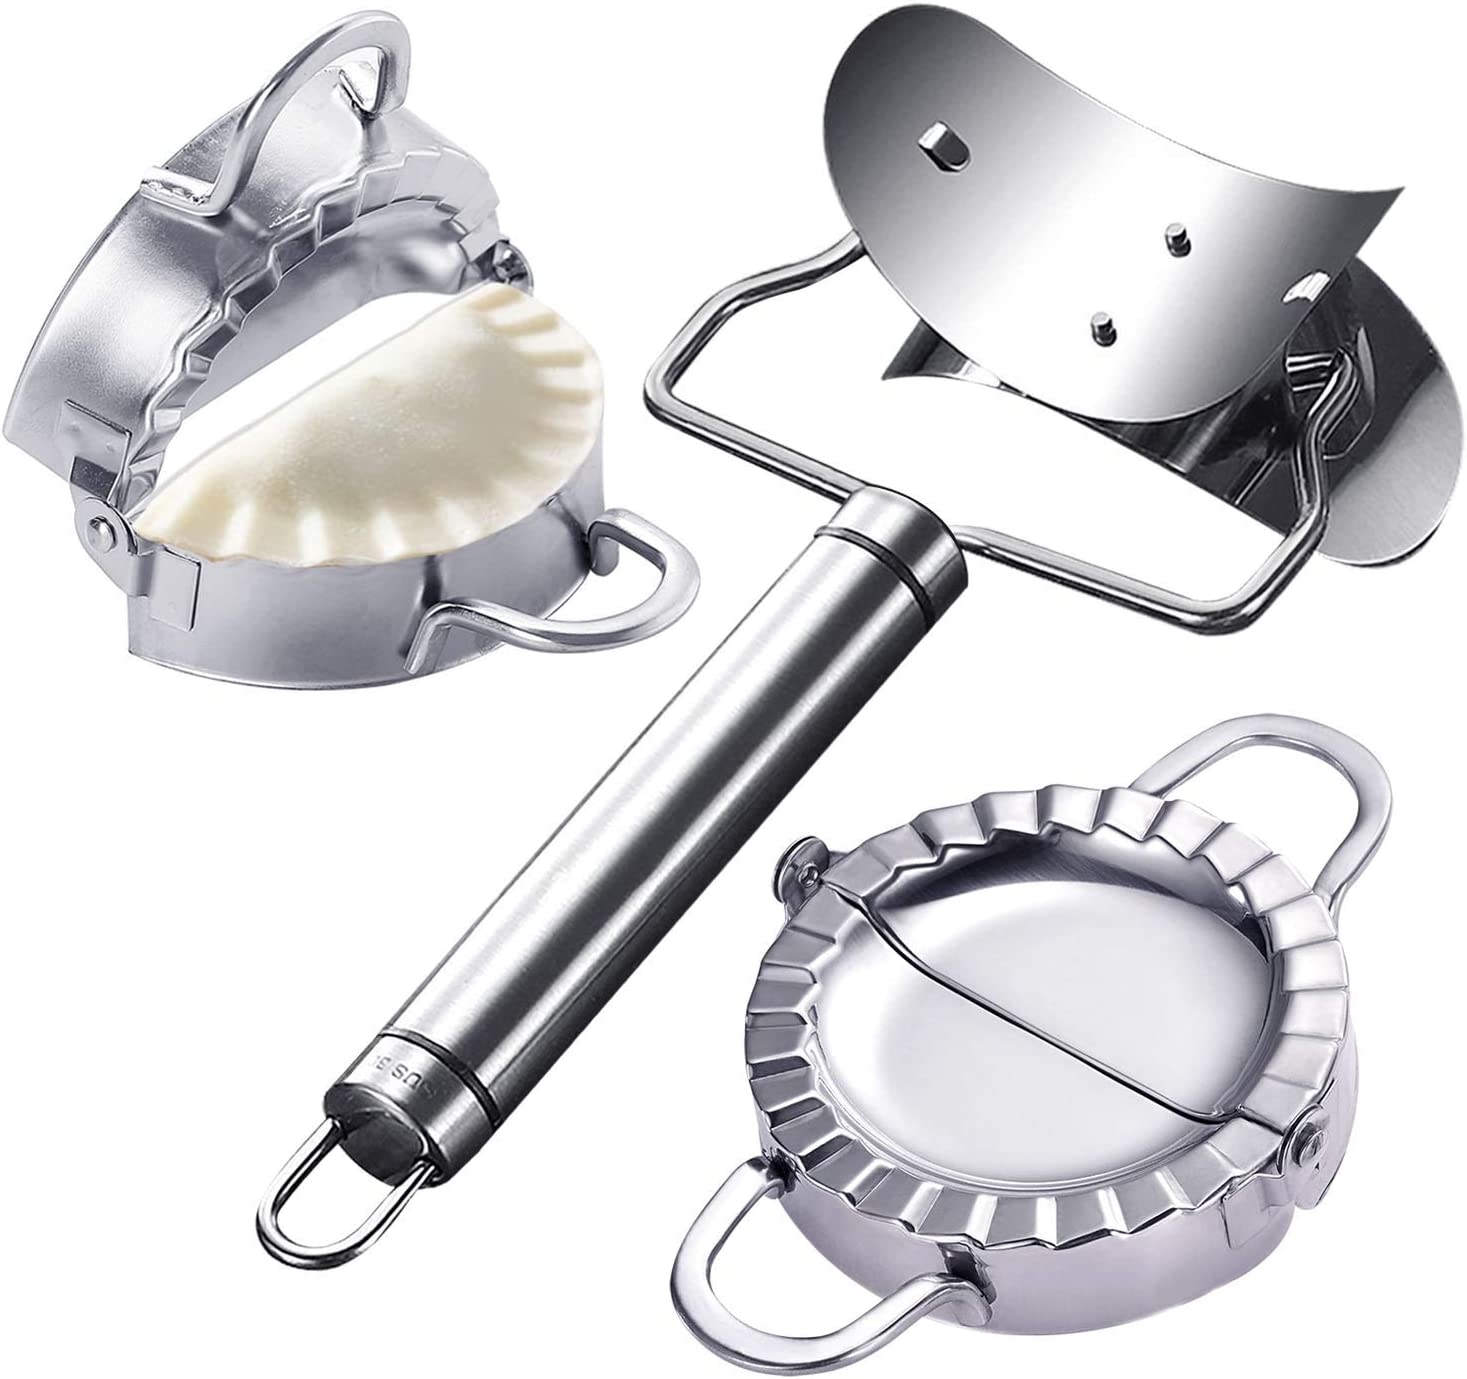 MyLifeUNIT Dumpling Maker Bombing new work 3 25% OFF Pack Stainless Steel Mold